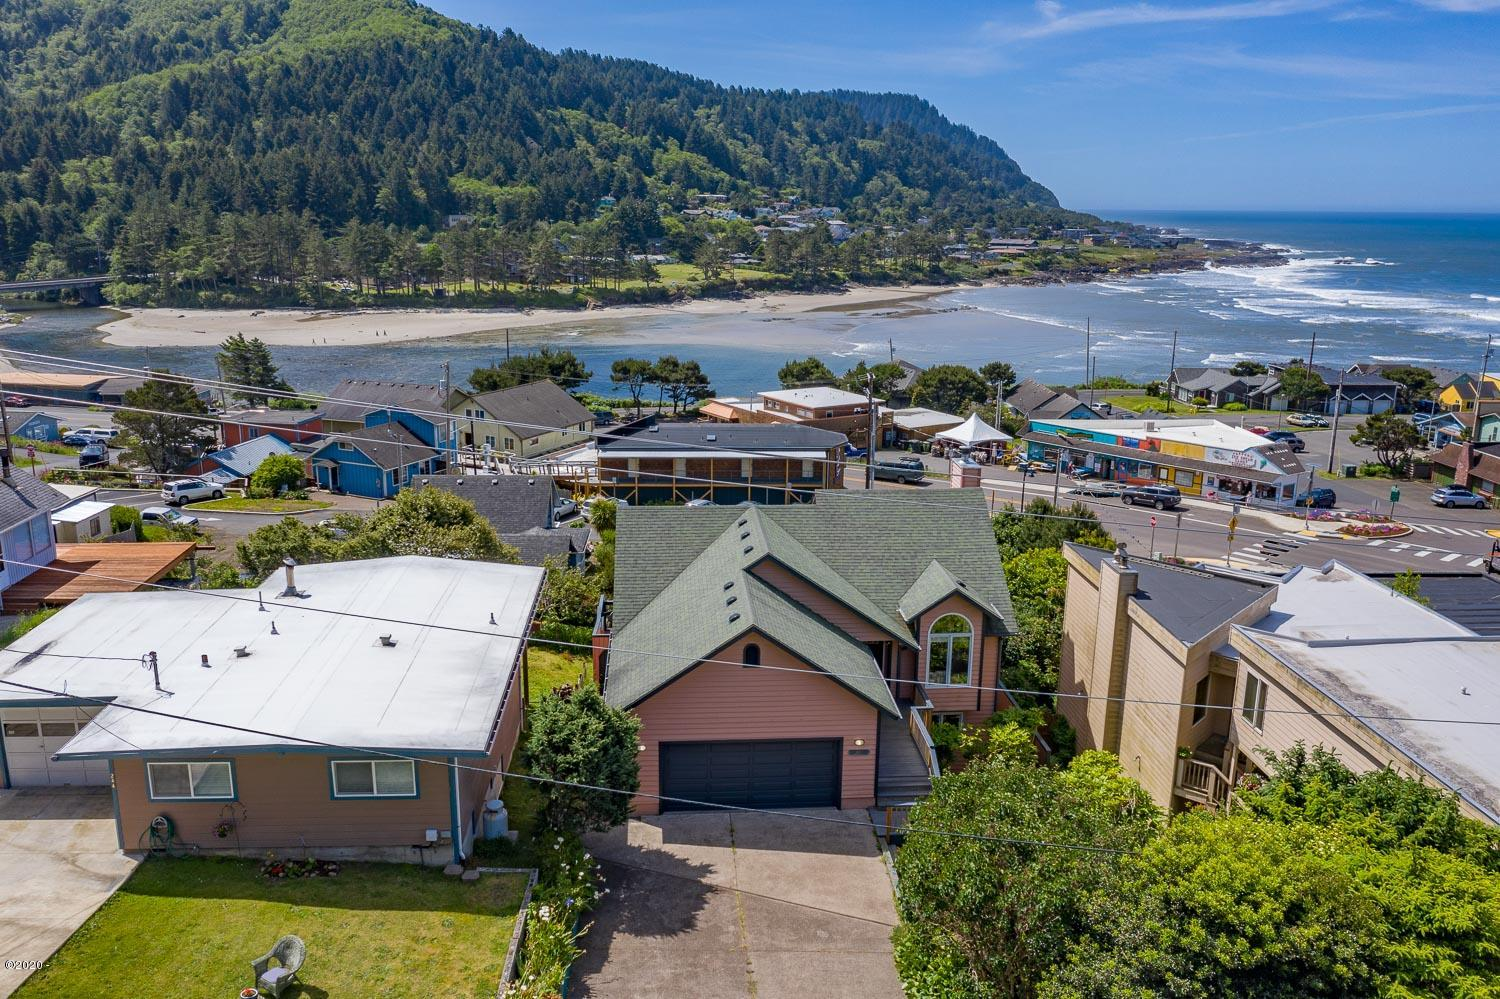 224 E 3 Rd STREET, Yachats, OR 97498 - Frohnmayer Ext.